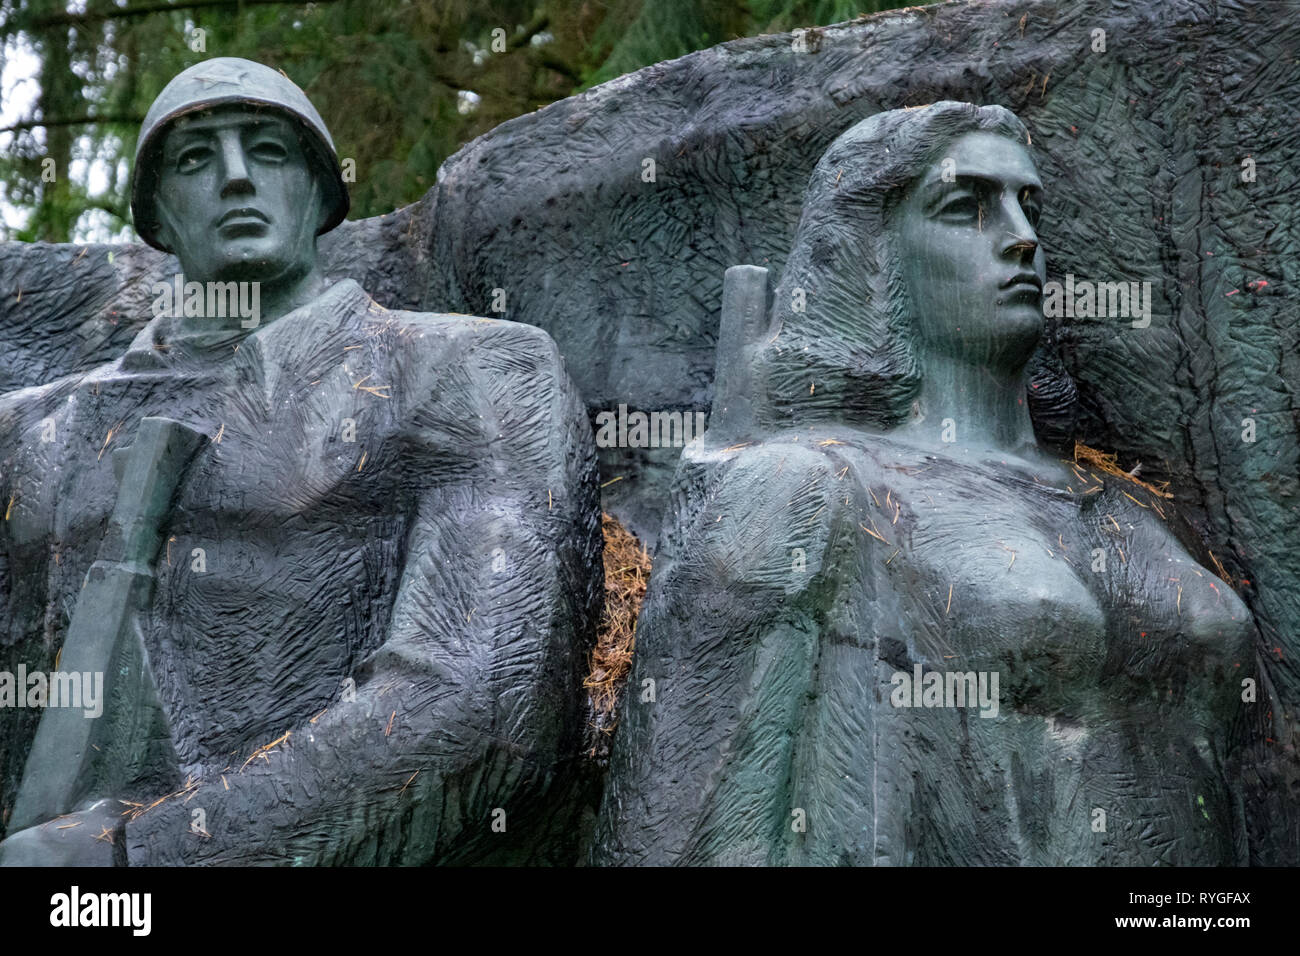 Sculpture of male & female revolutionary fighters, an example of Socialist Realist statues gathered from around the former Soviet Union - Stock Image